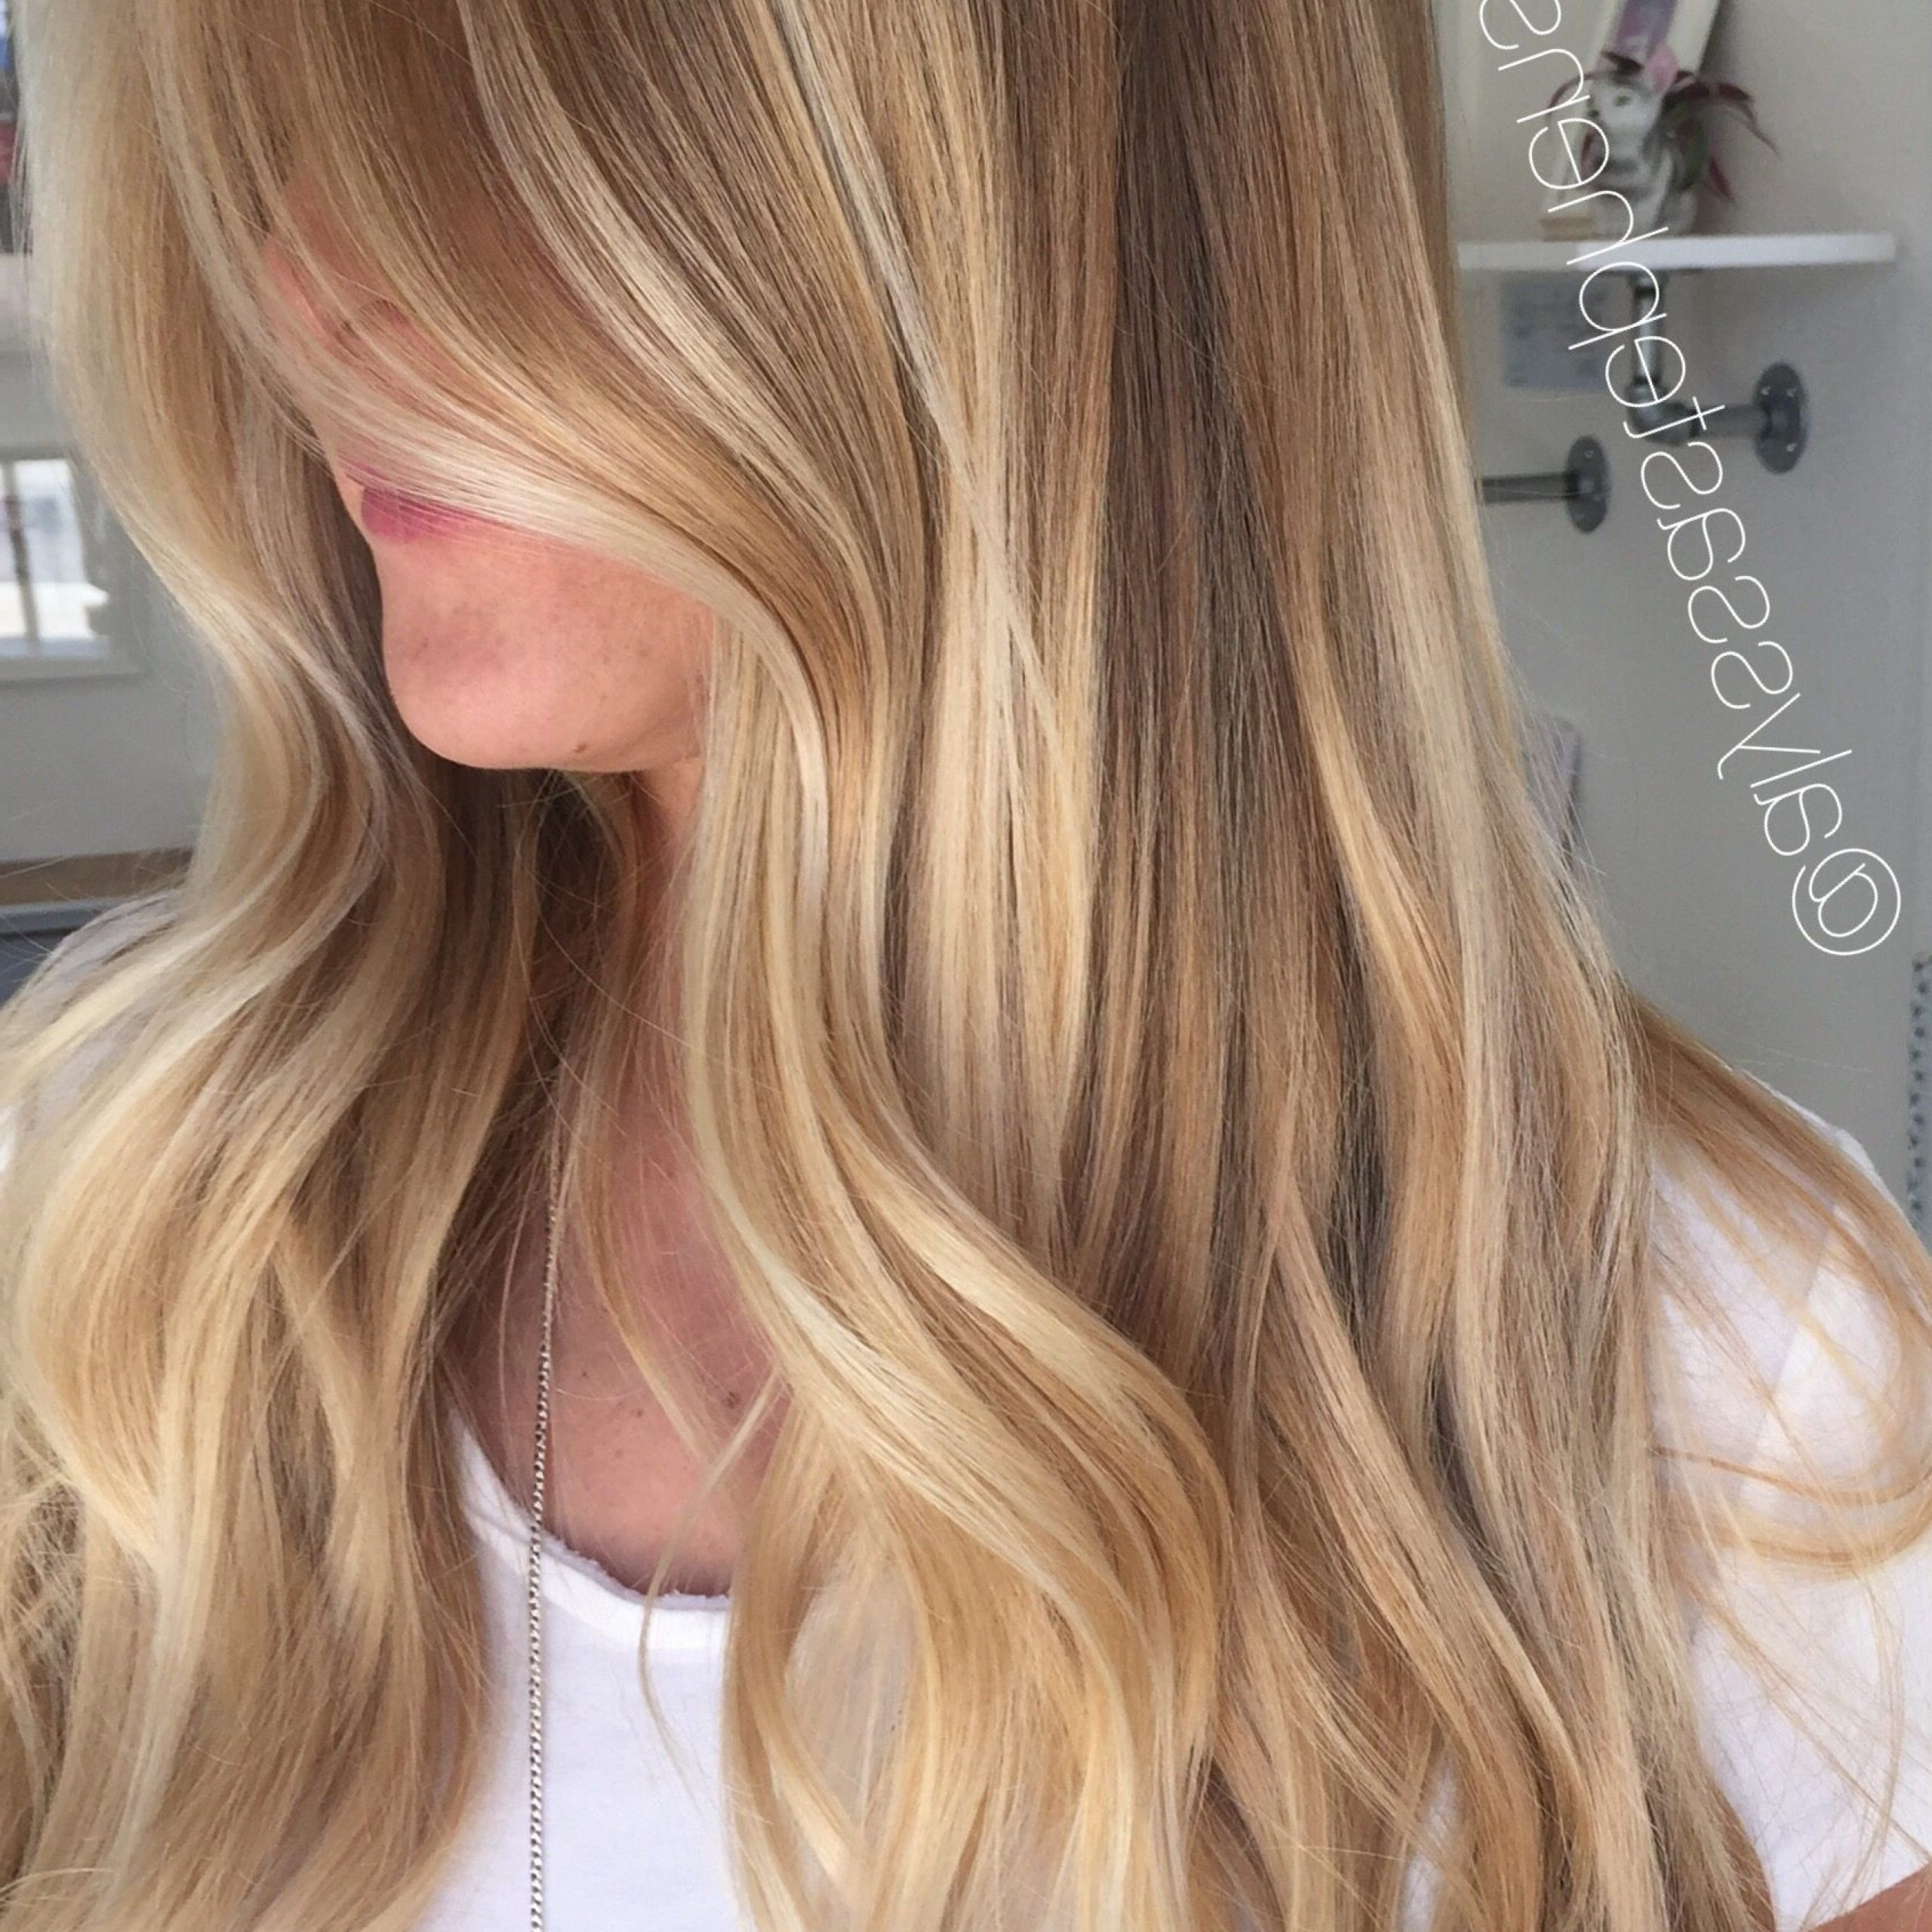 Golden Sunkissed Blonde Balayage Long Hair Balayage Hair With Regard To Well Known Golden Blonde Balayage On Long Curls Hairstyles (View 10 of 20)